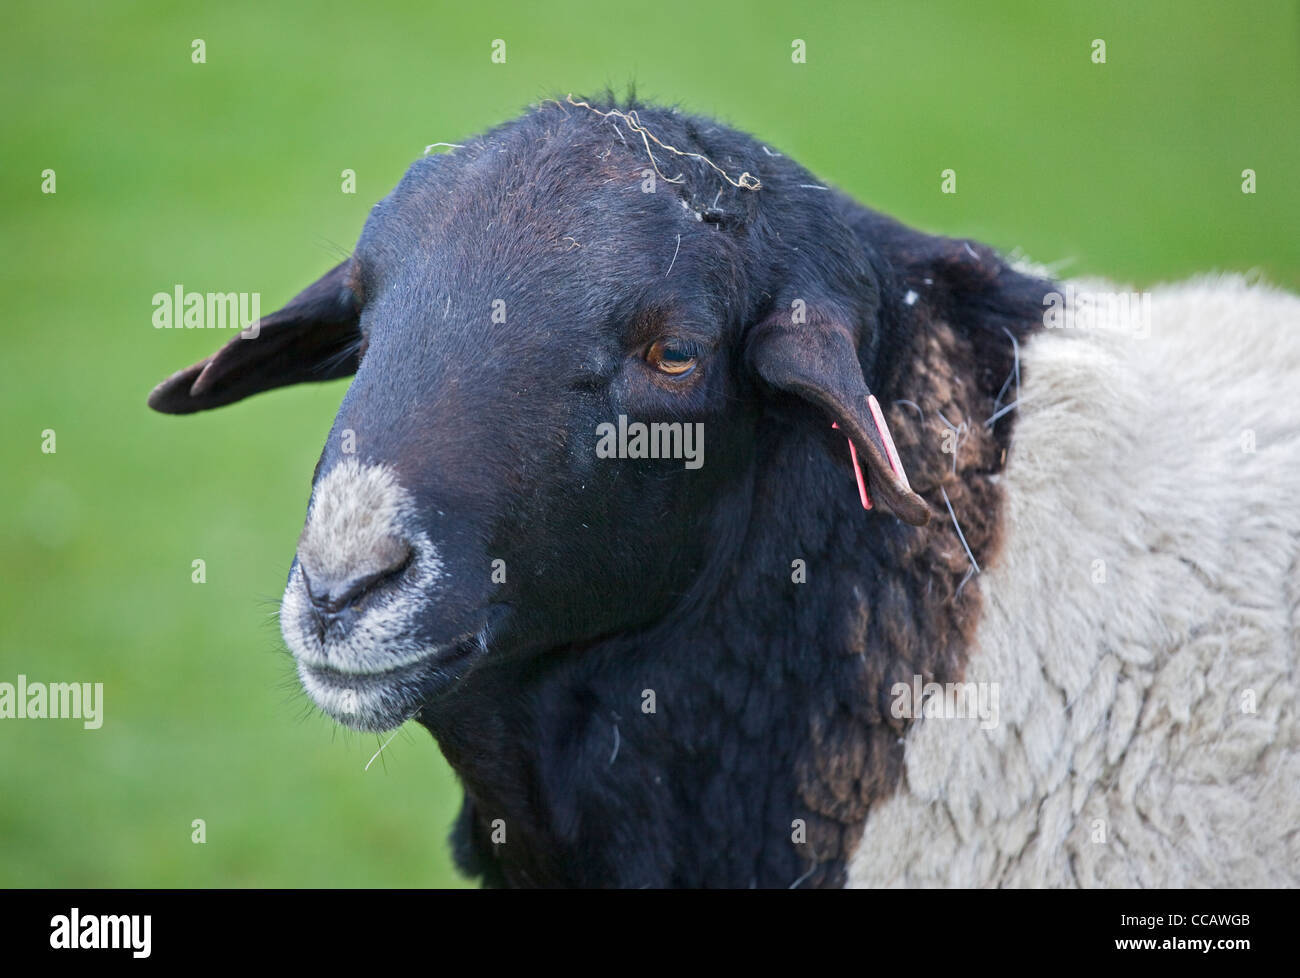 Somali Black Headed Sheep - Stock Image